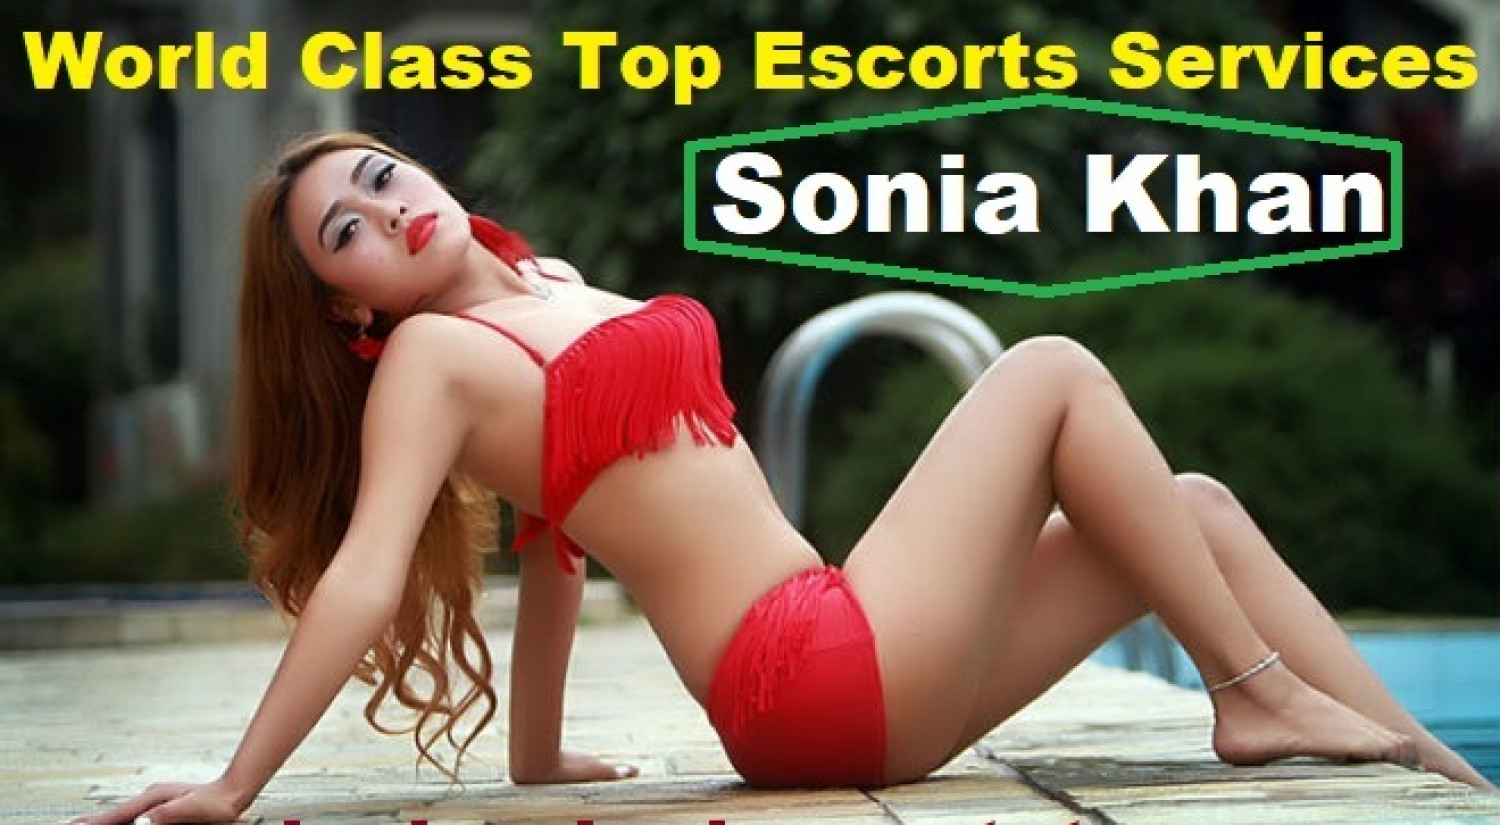 Sonia Khan Offering VIP Hyderabad Escorts Service 24/7 Infographic